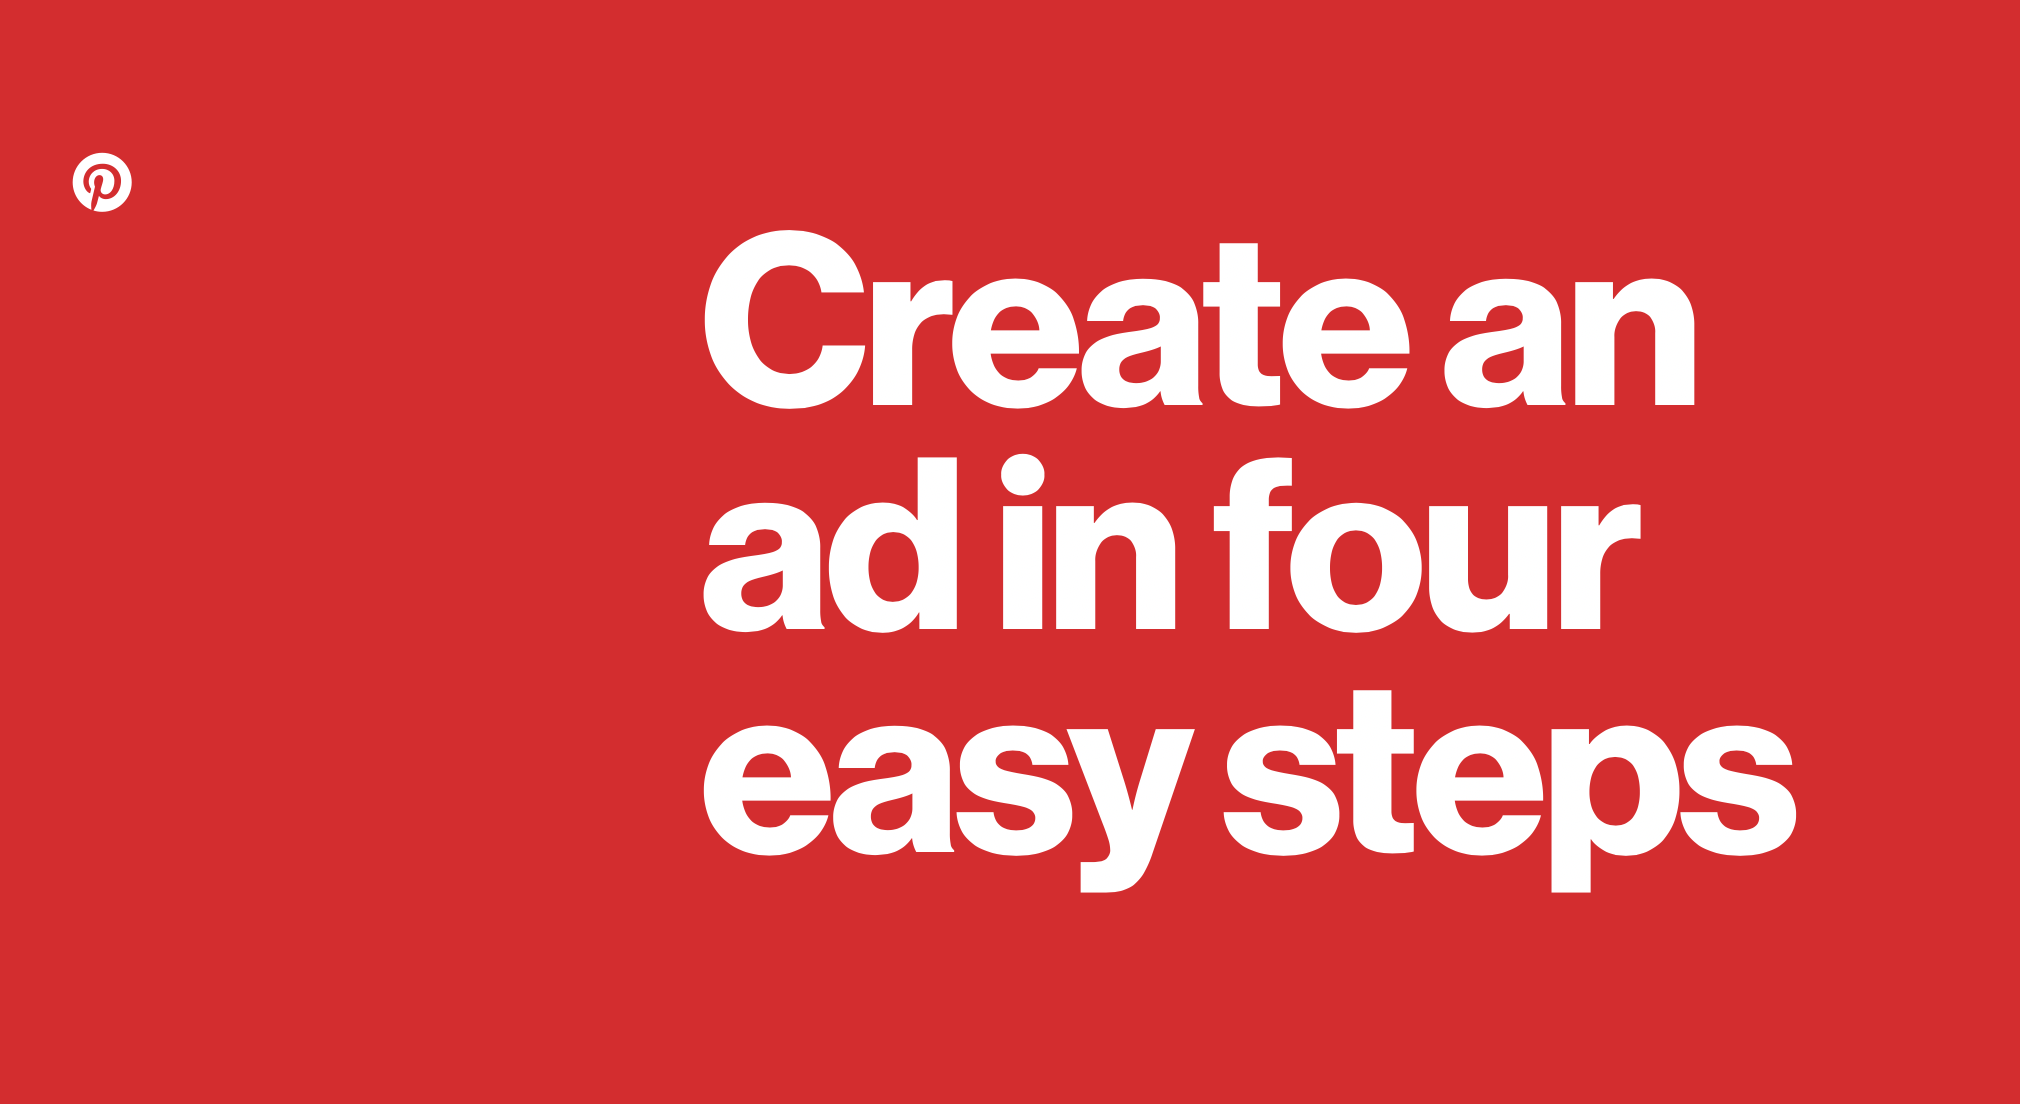 Image saying Create and ad in four easy steps